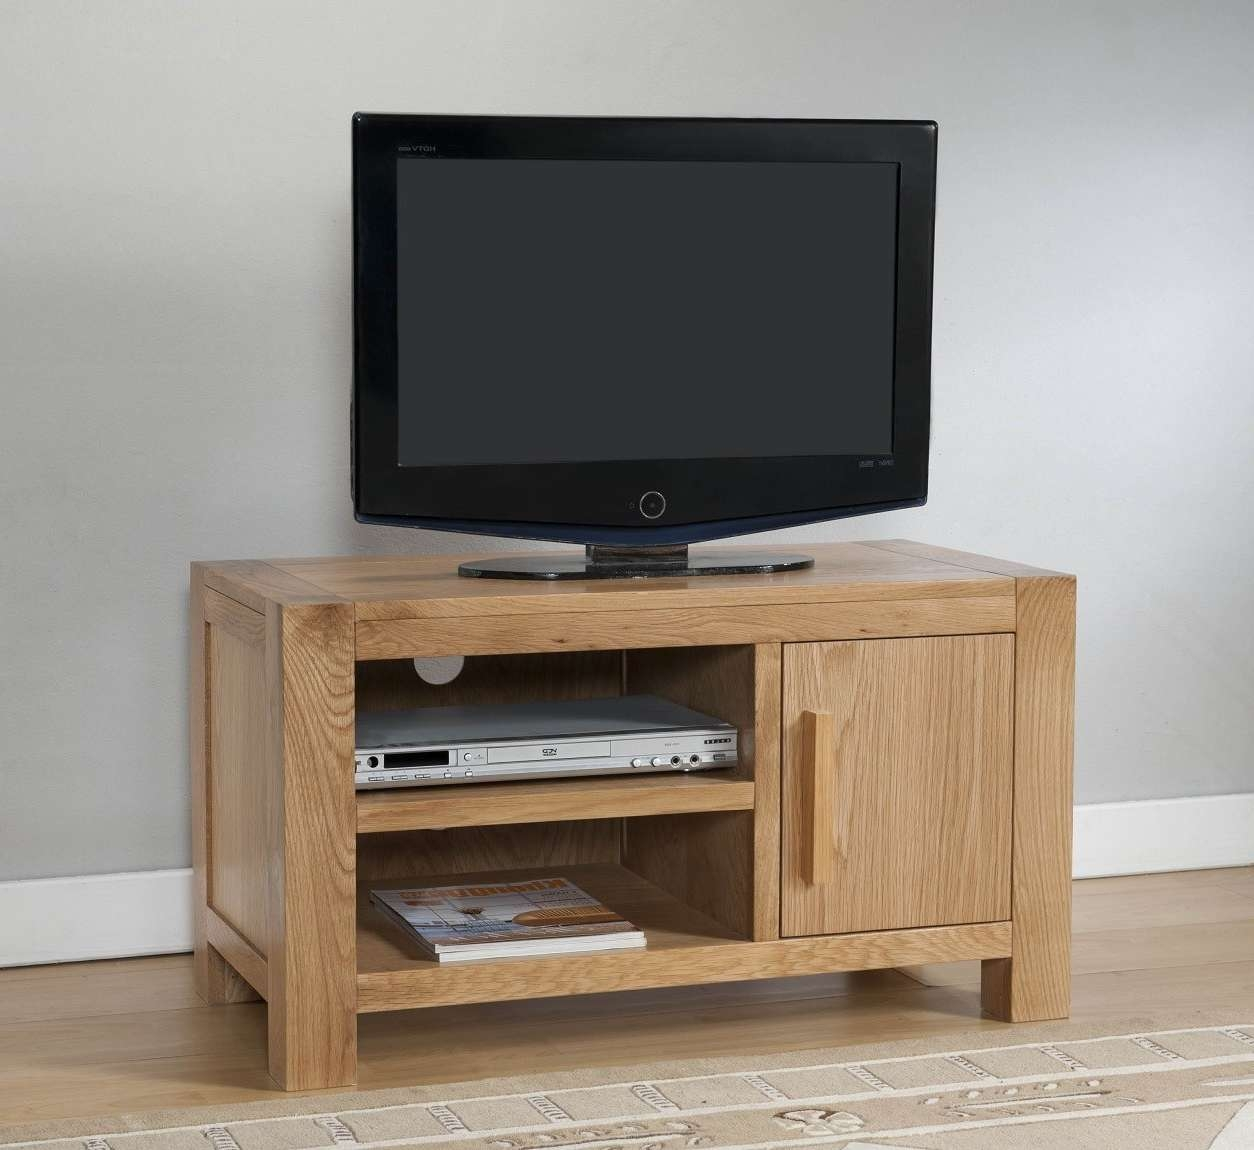 Aylesbury Contemporary Light Oak Small Tv Unit | Oak Furniture Uk Intended For Small Oak Tv Cabinets (View 1 of 20)